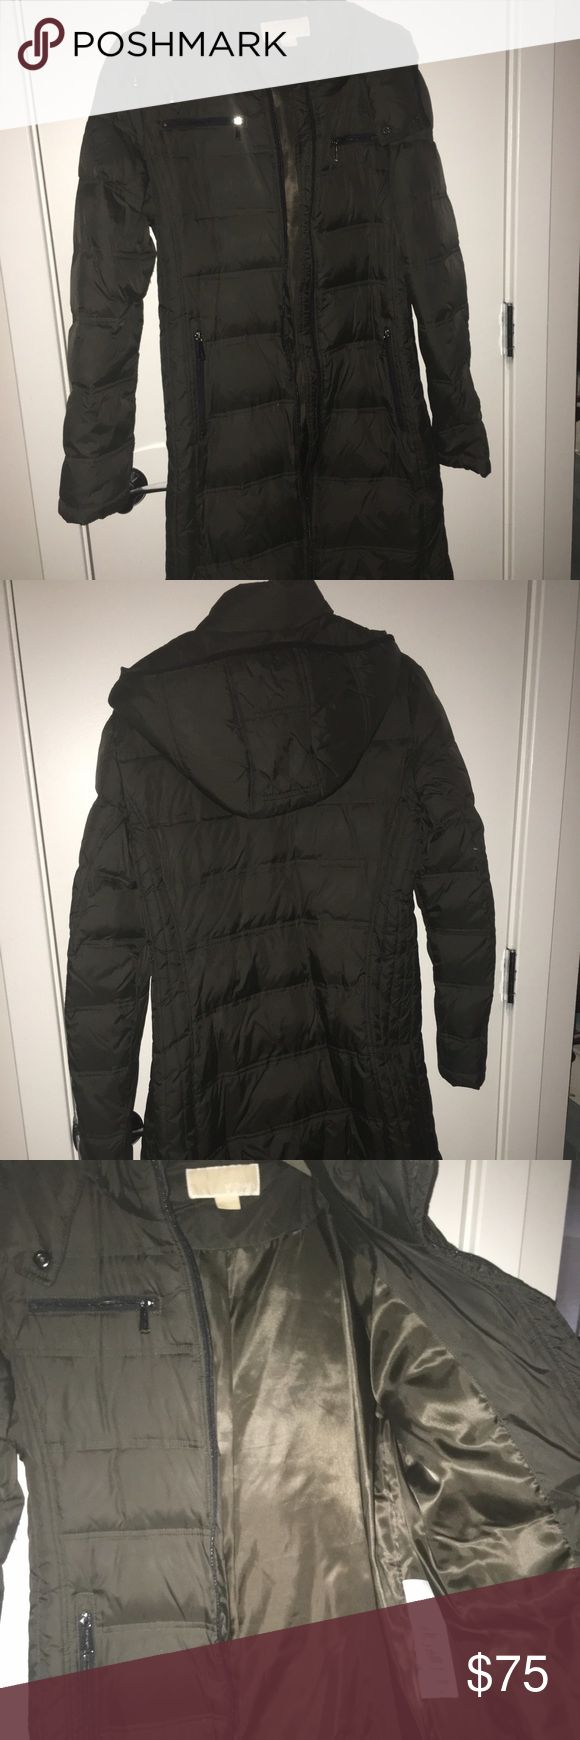 Michael Kors quilted coat. Hunter green Michael Kors quilted jacket. Worn under five times and in great condition. MICHAEL Michael Kors Jackets & Coats Puffers